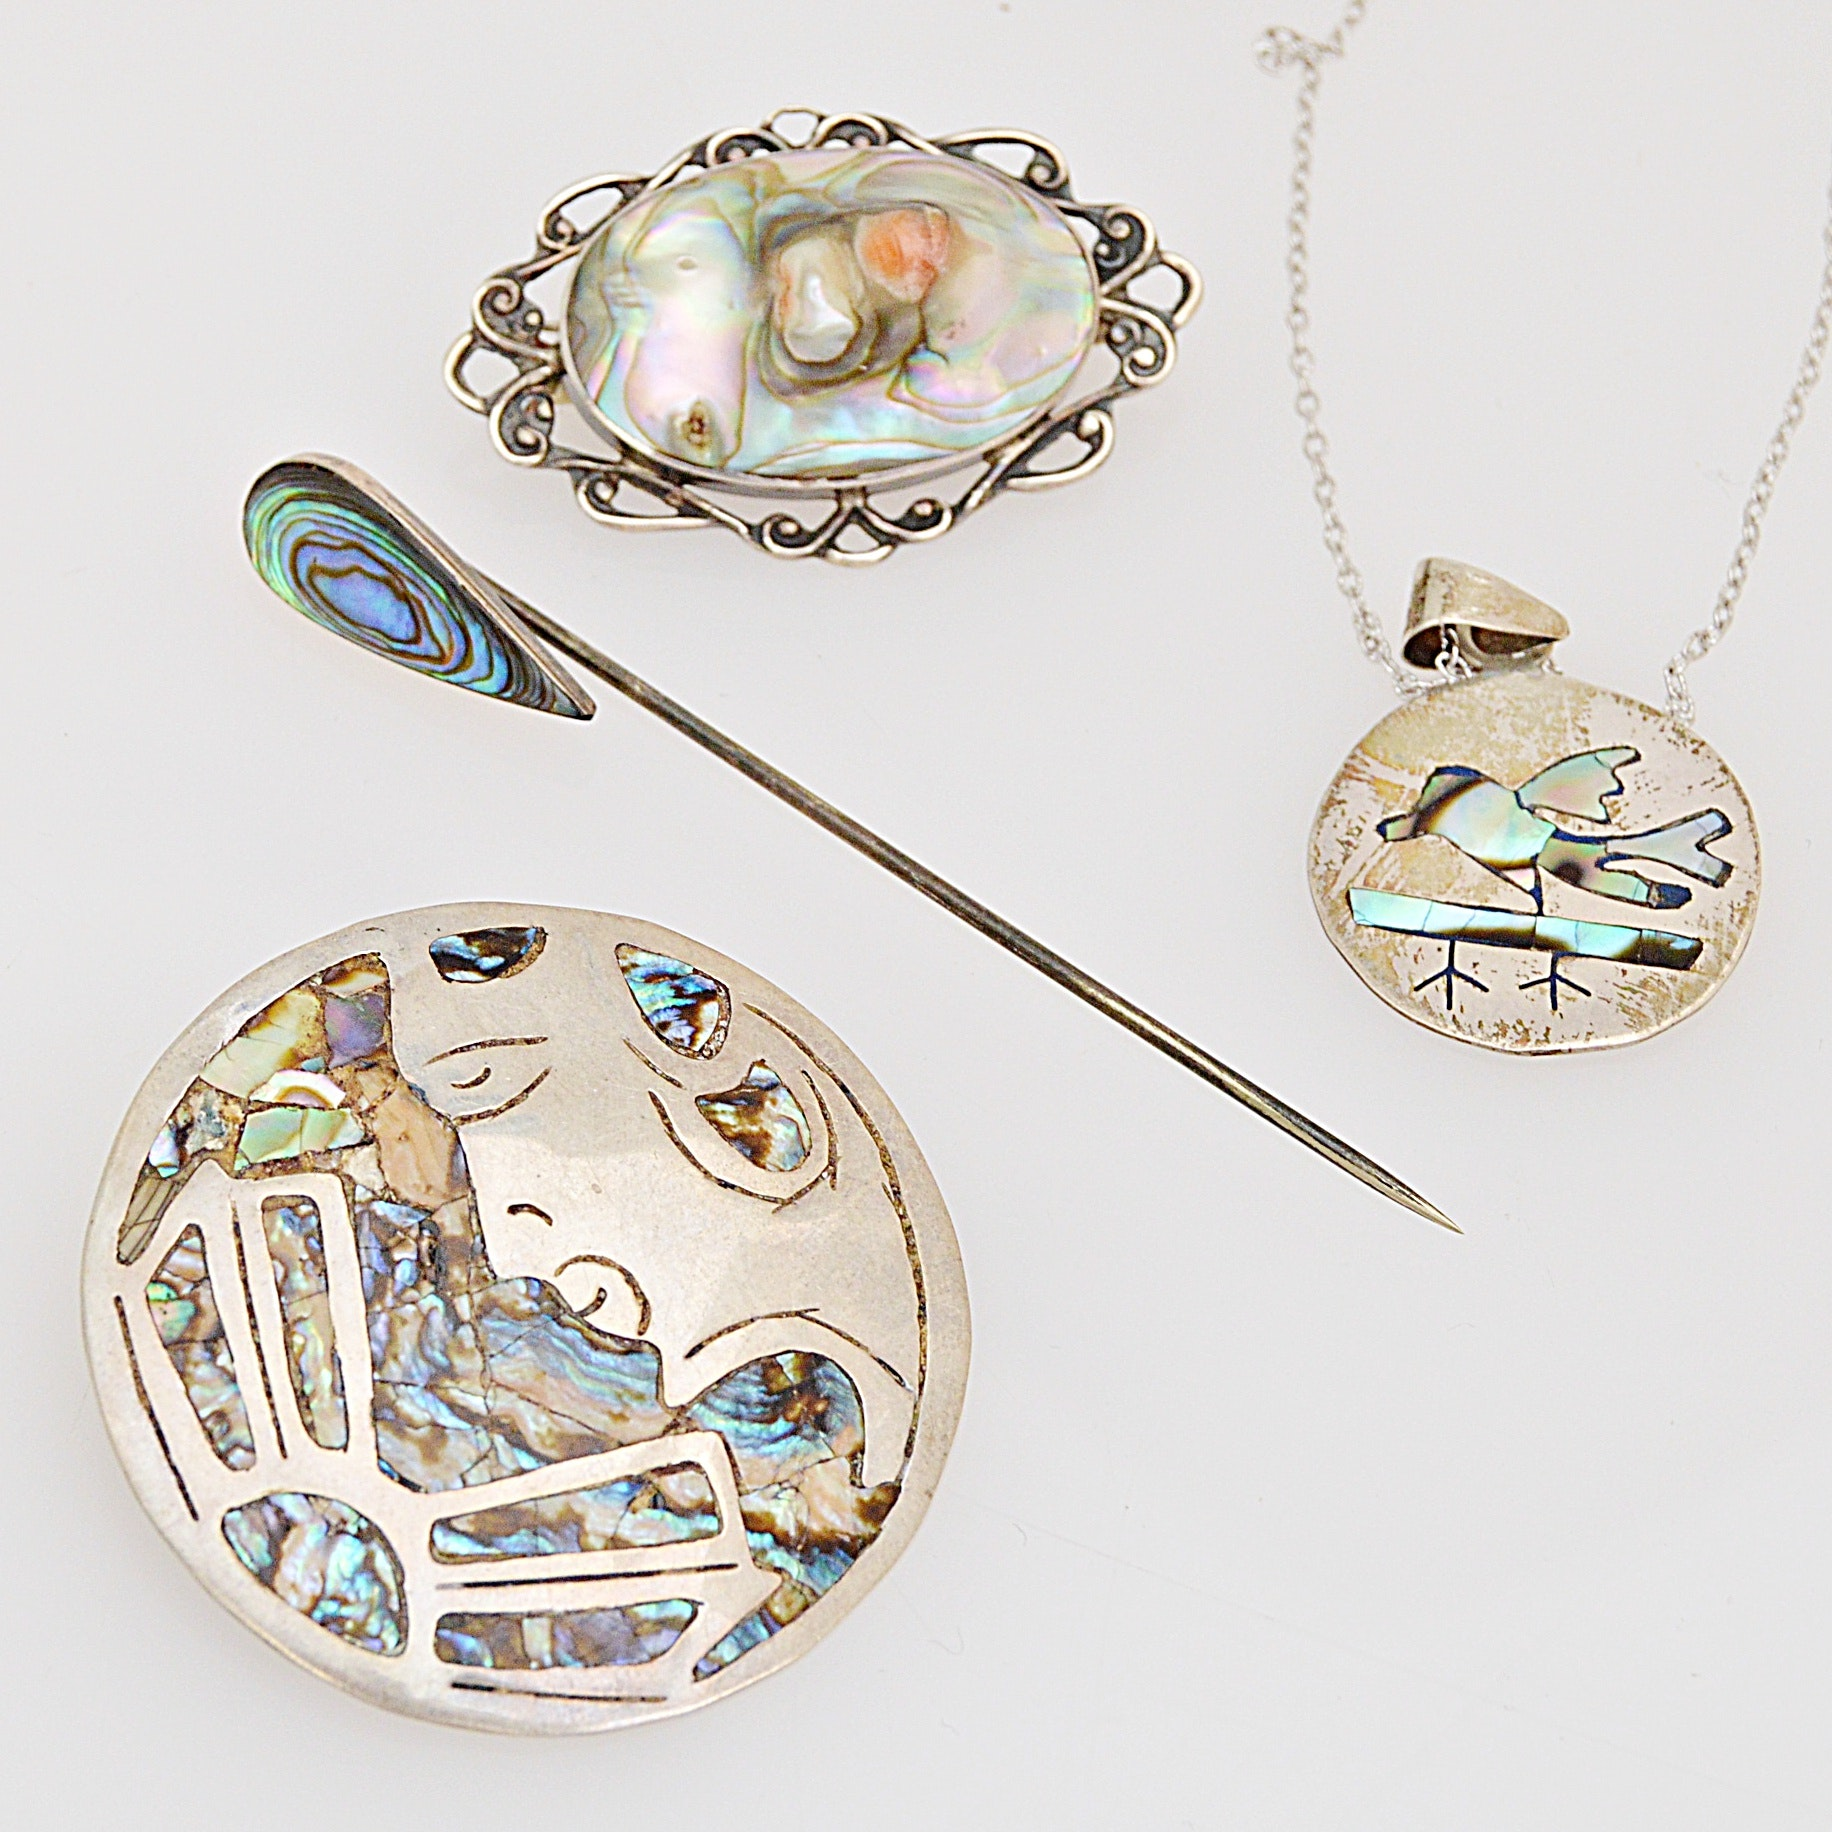 Vintage Sterling Silver and Abalone Jewelry with Mexico Taxco